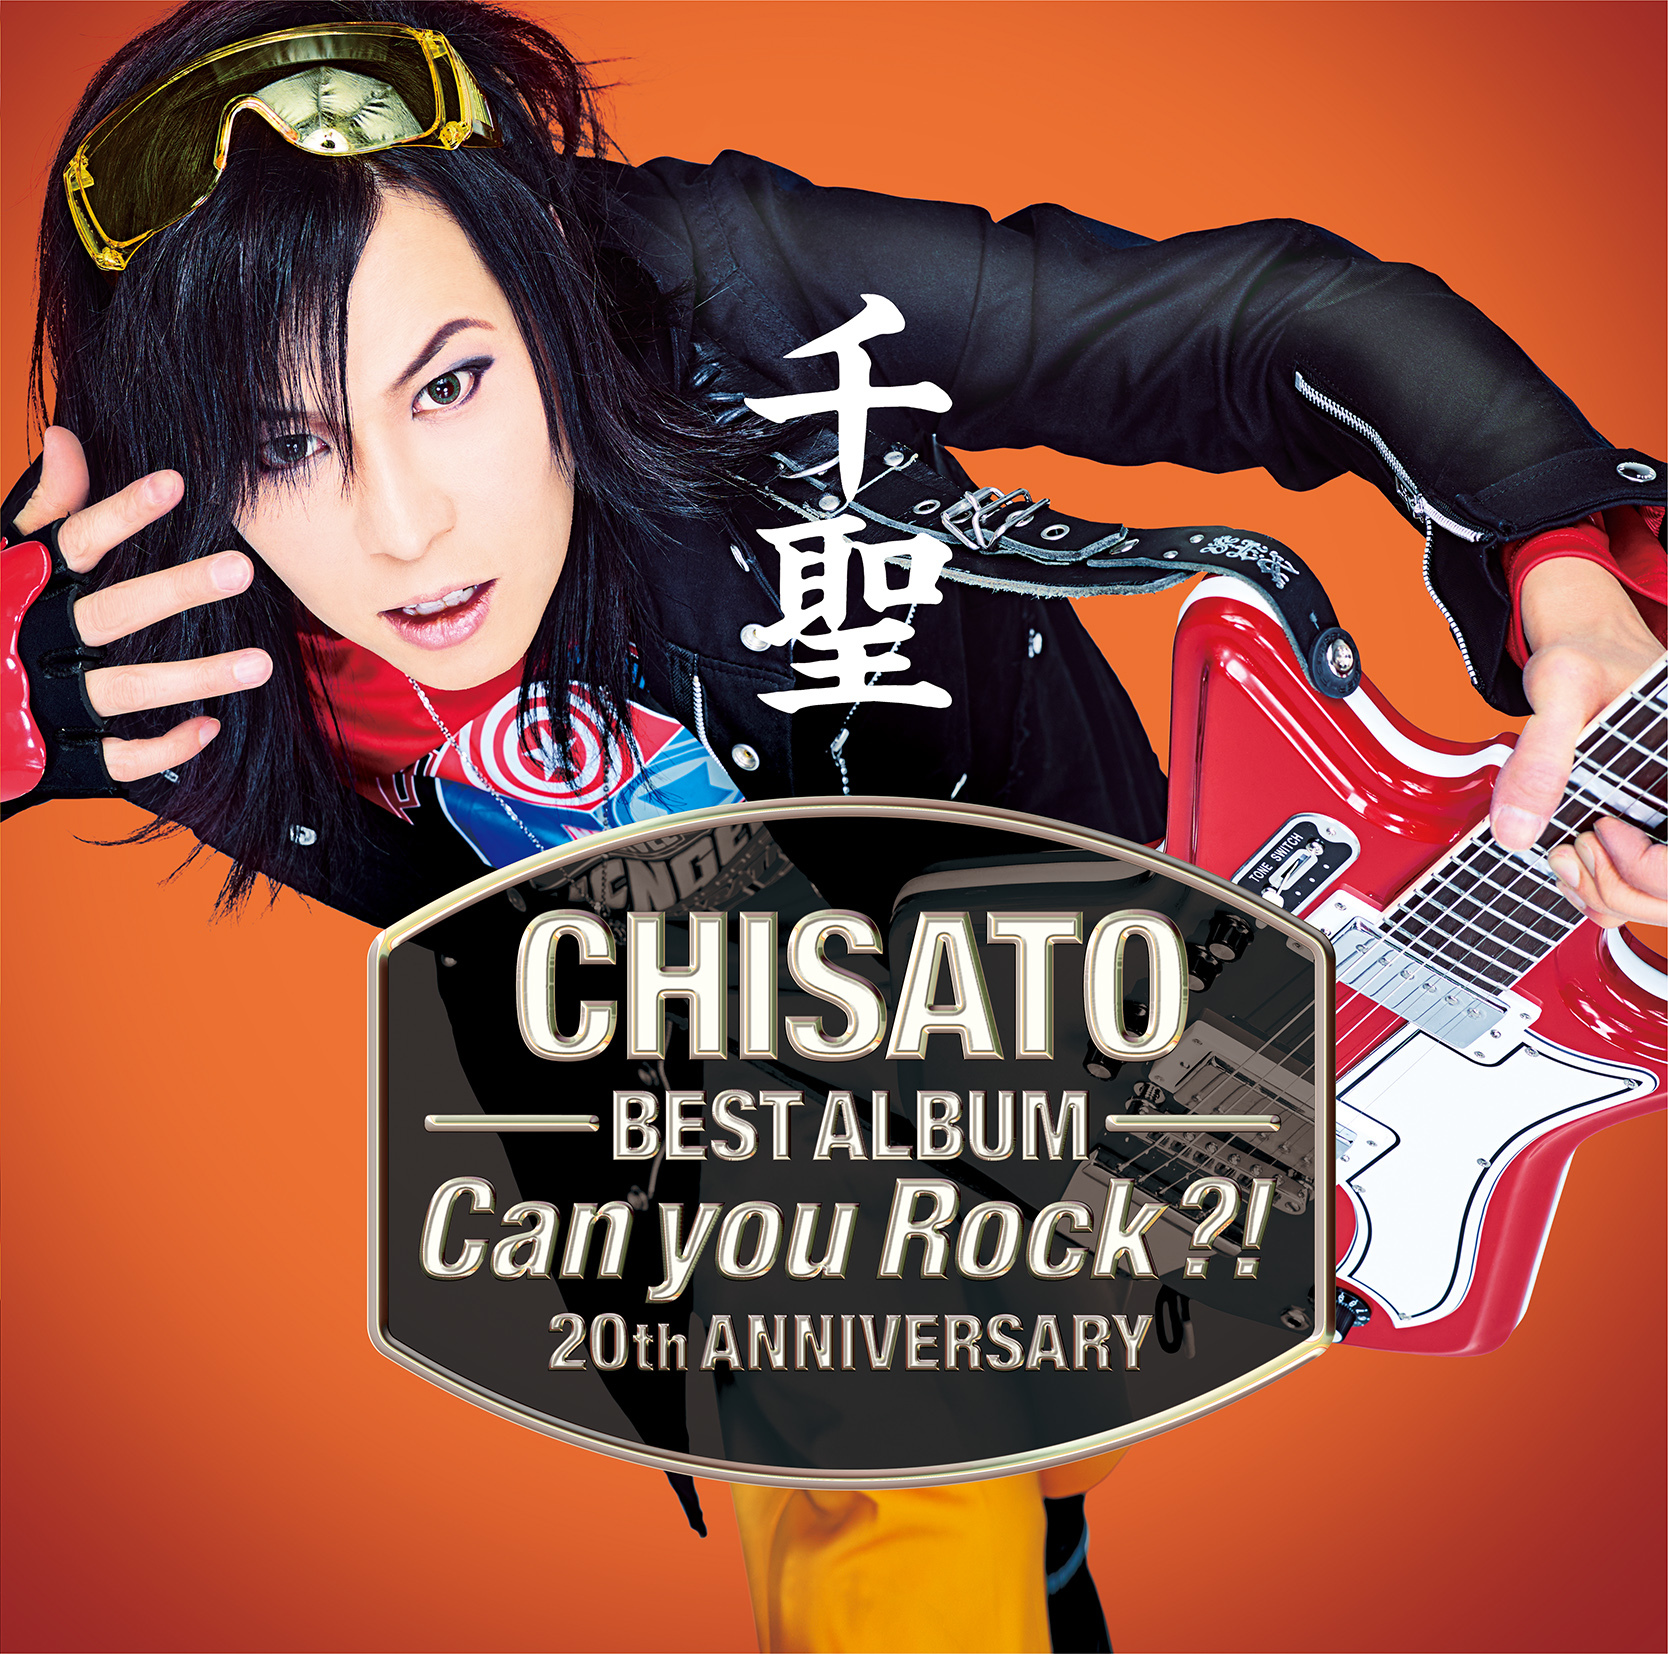 千聖~CHISATO~ 20th ANNIVERSARY BEST ALBUM「Can you Rock?!」通常盤